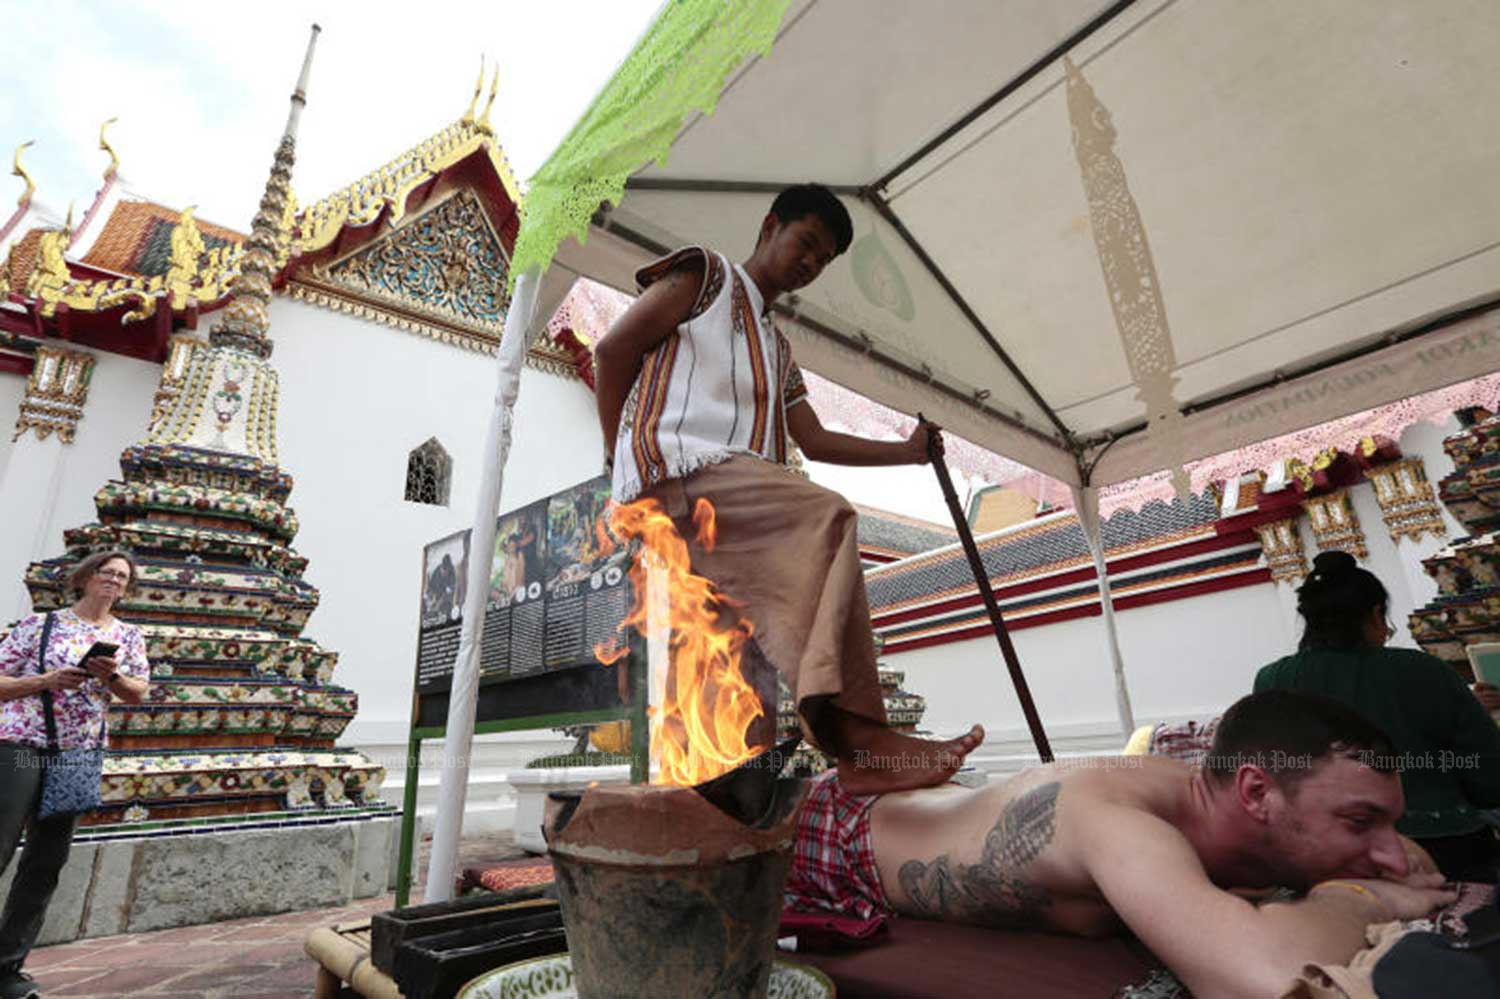 A masseur uses his feet to ease aches in a tourist's back during the Thai traditional medicine fair at Wat Phra Chetuphon (Wat Pho) in Bangkok from Oct 29-Nov 3 this year. (File photo)